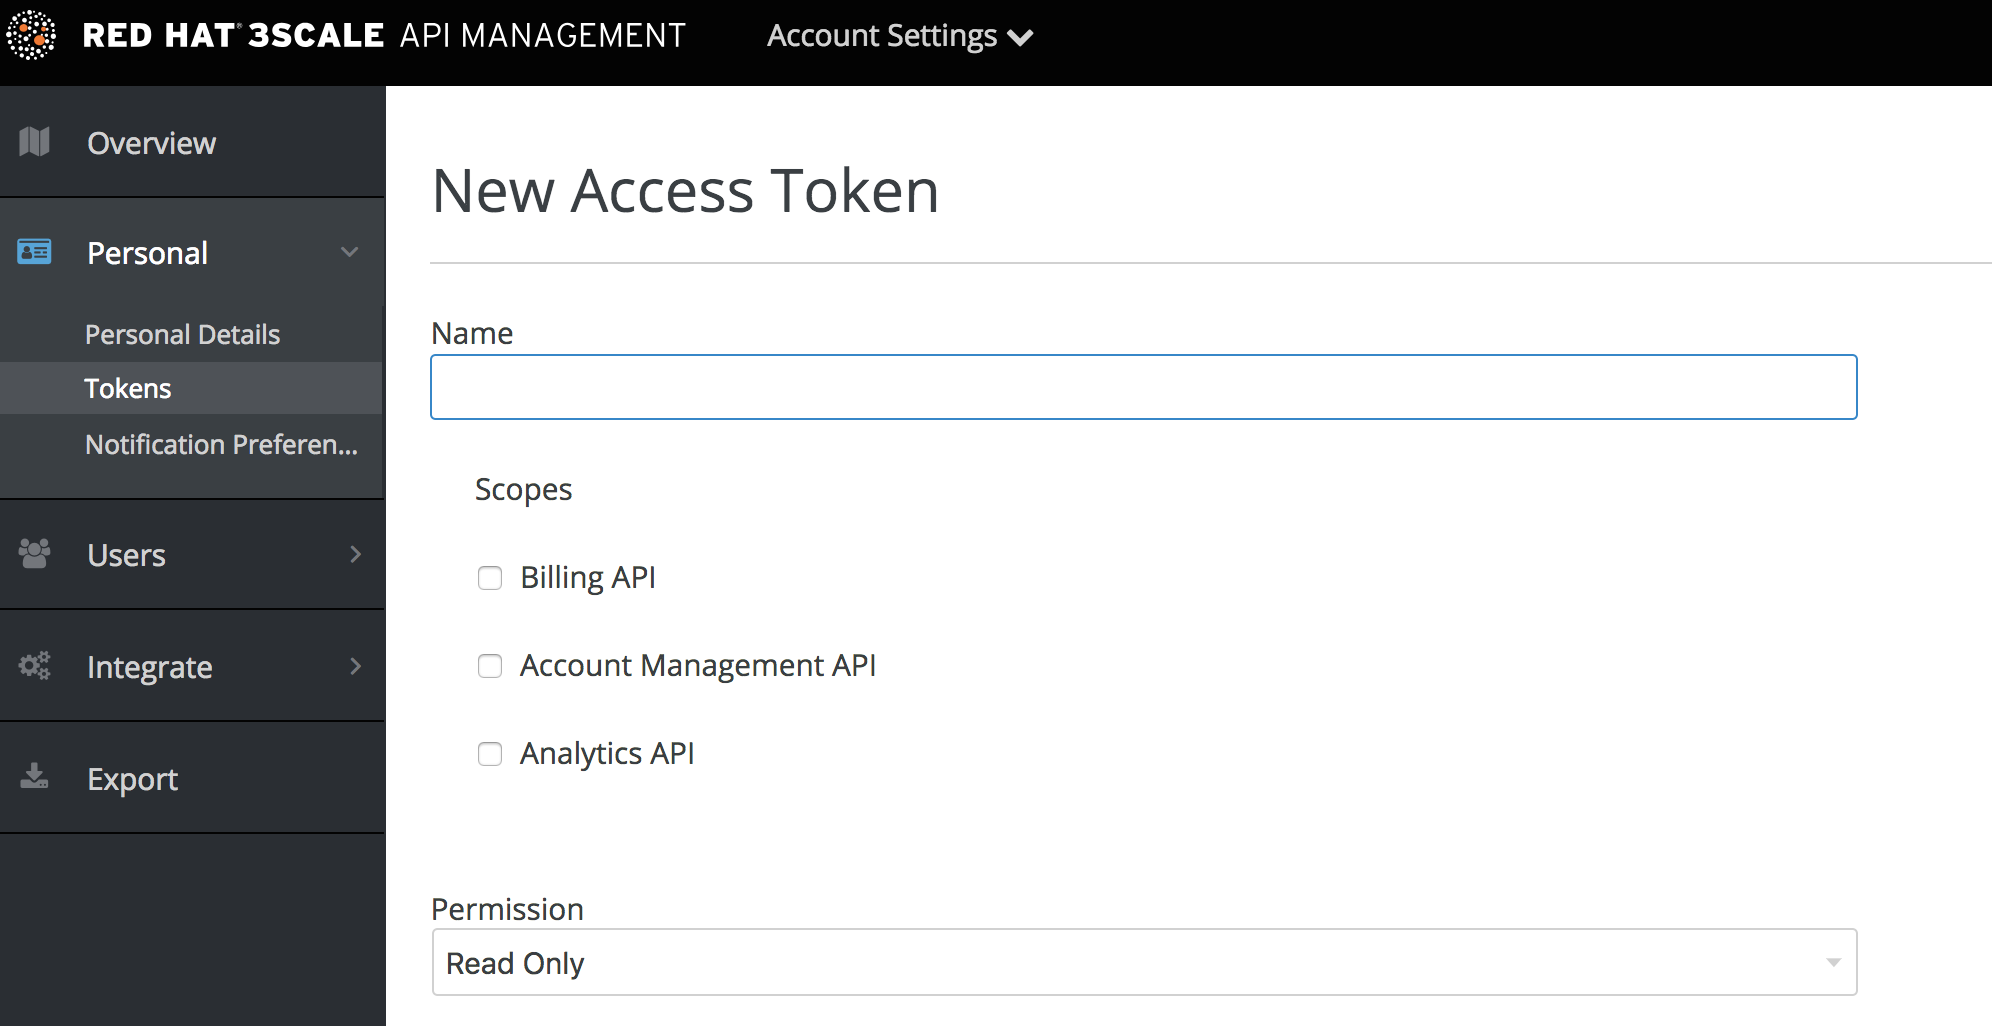 New access token